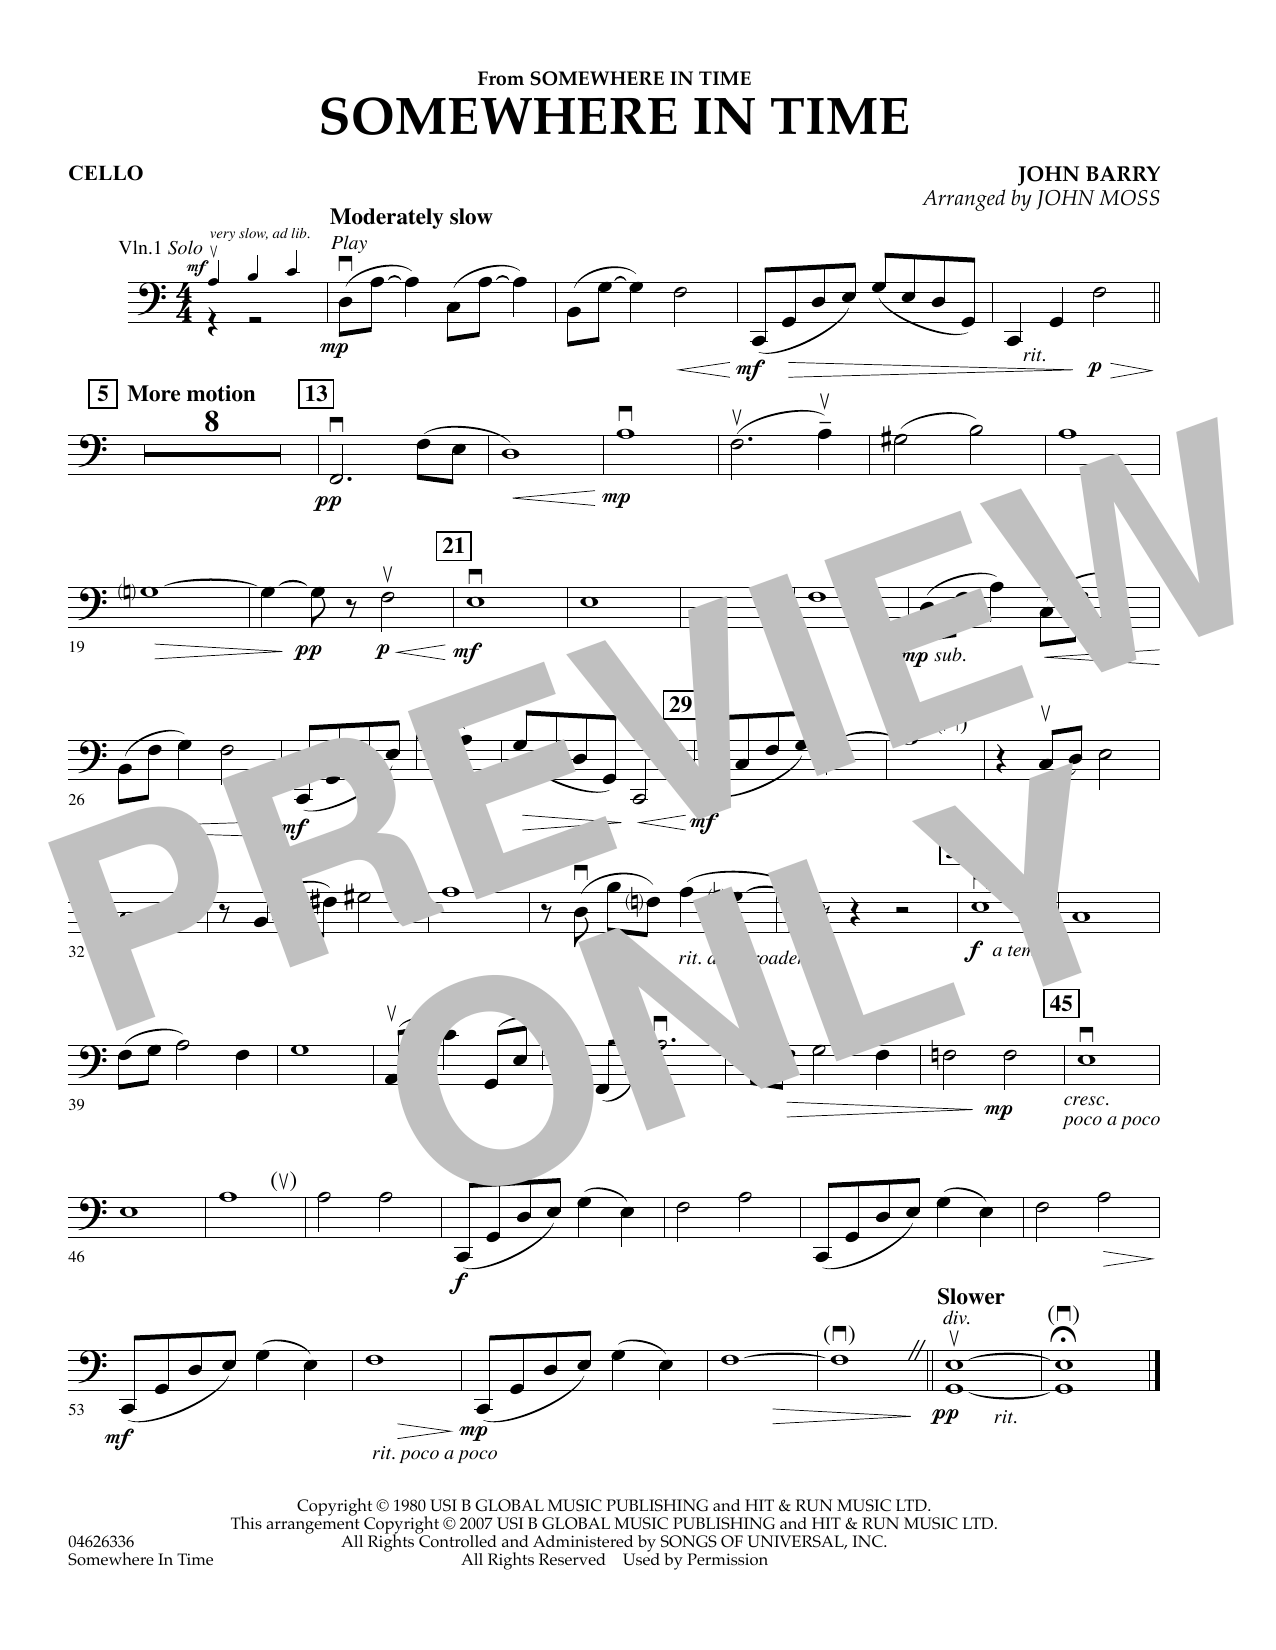 Somewhere in Time - Cello sheet music